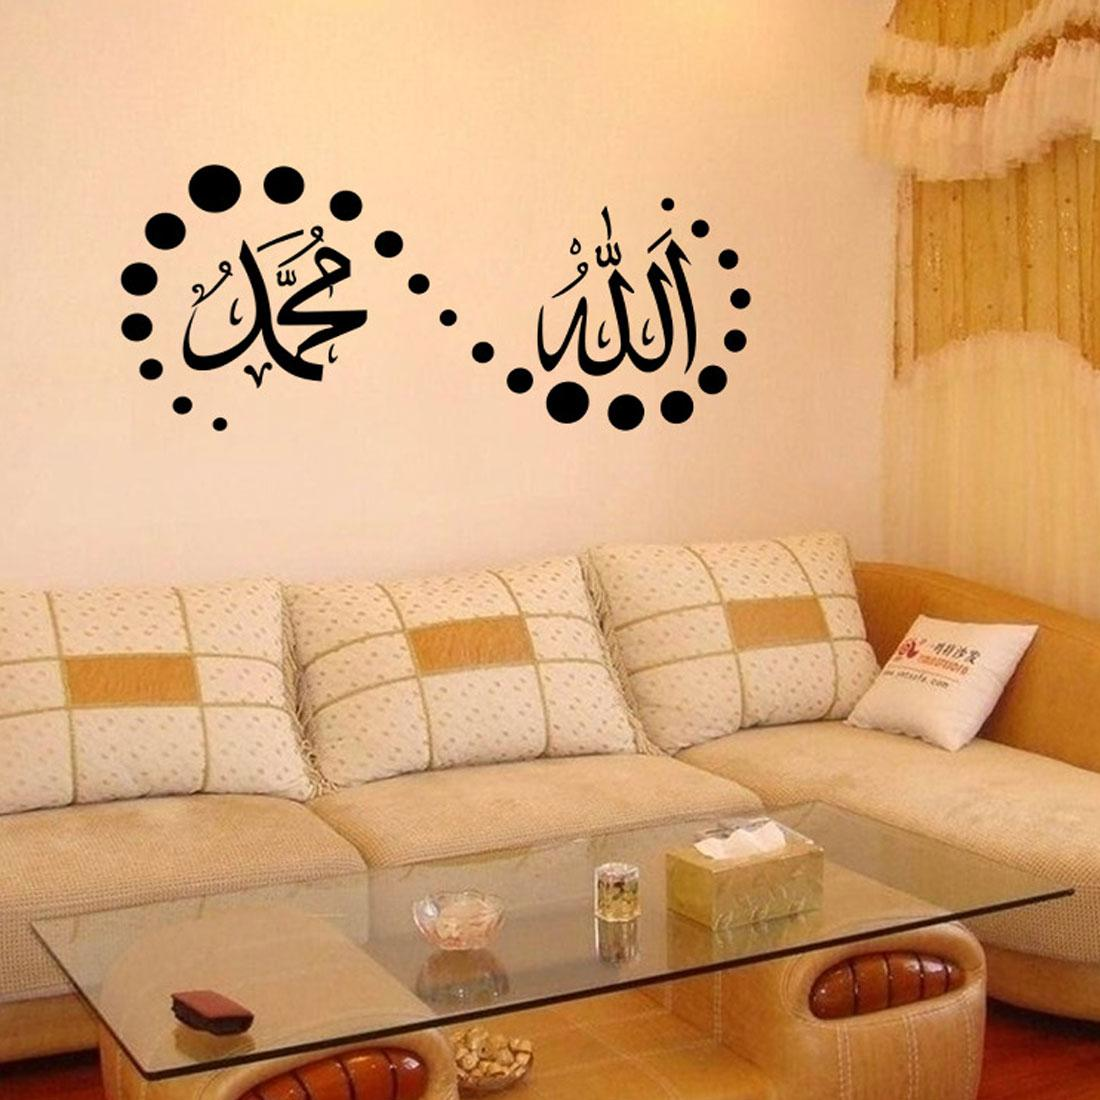 Polka Dots Calligraphy Islam Wall Stickers Removable Wallpaper Self ...